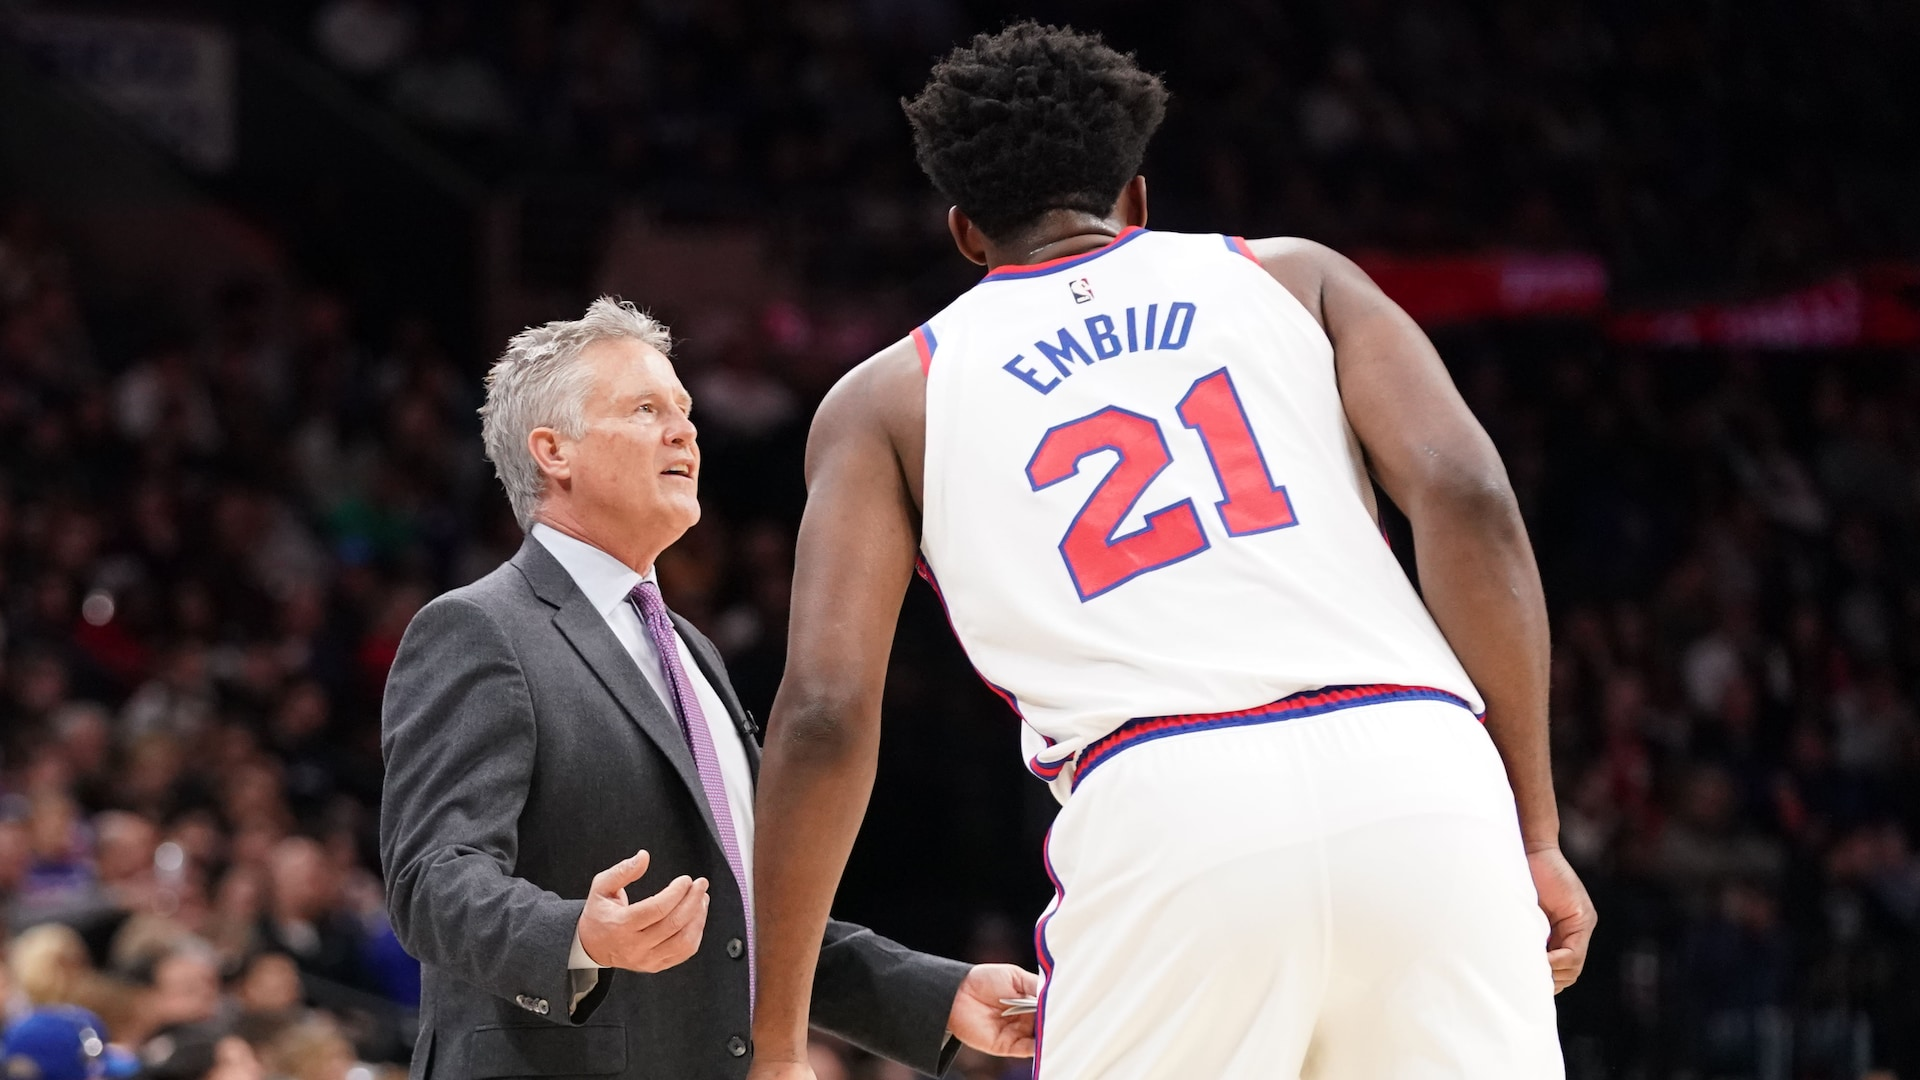 Will theme of the Sixers' season take a turn on 'road' to playoffs?